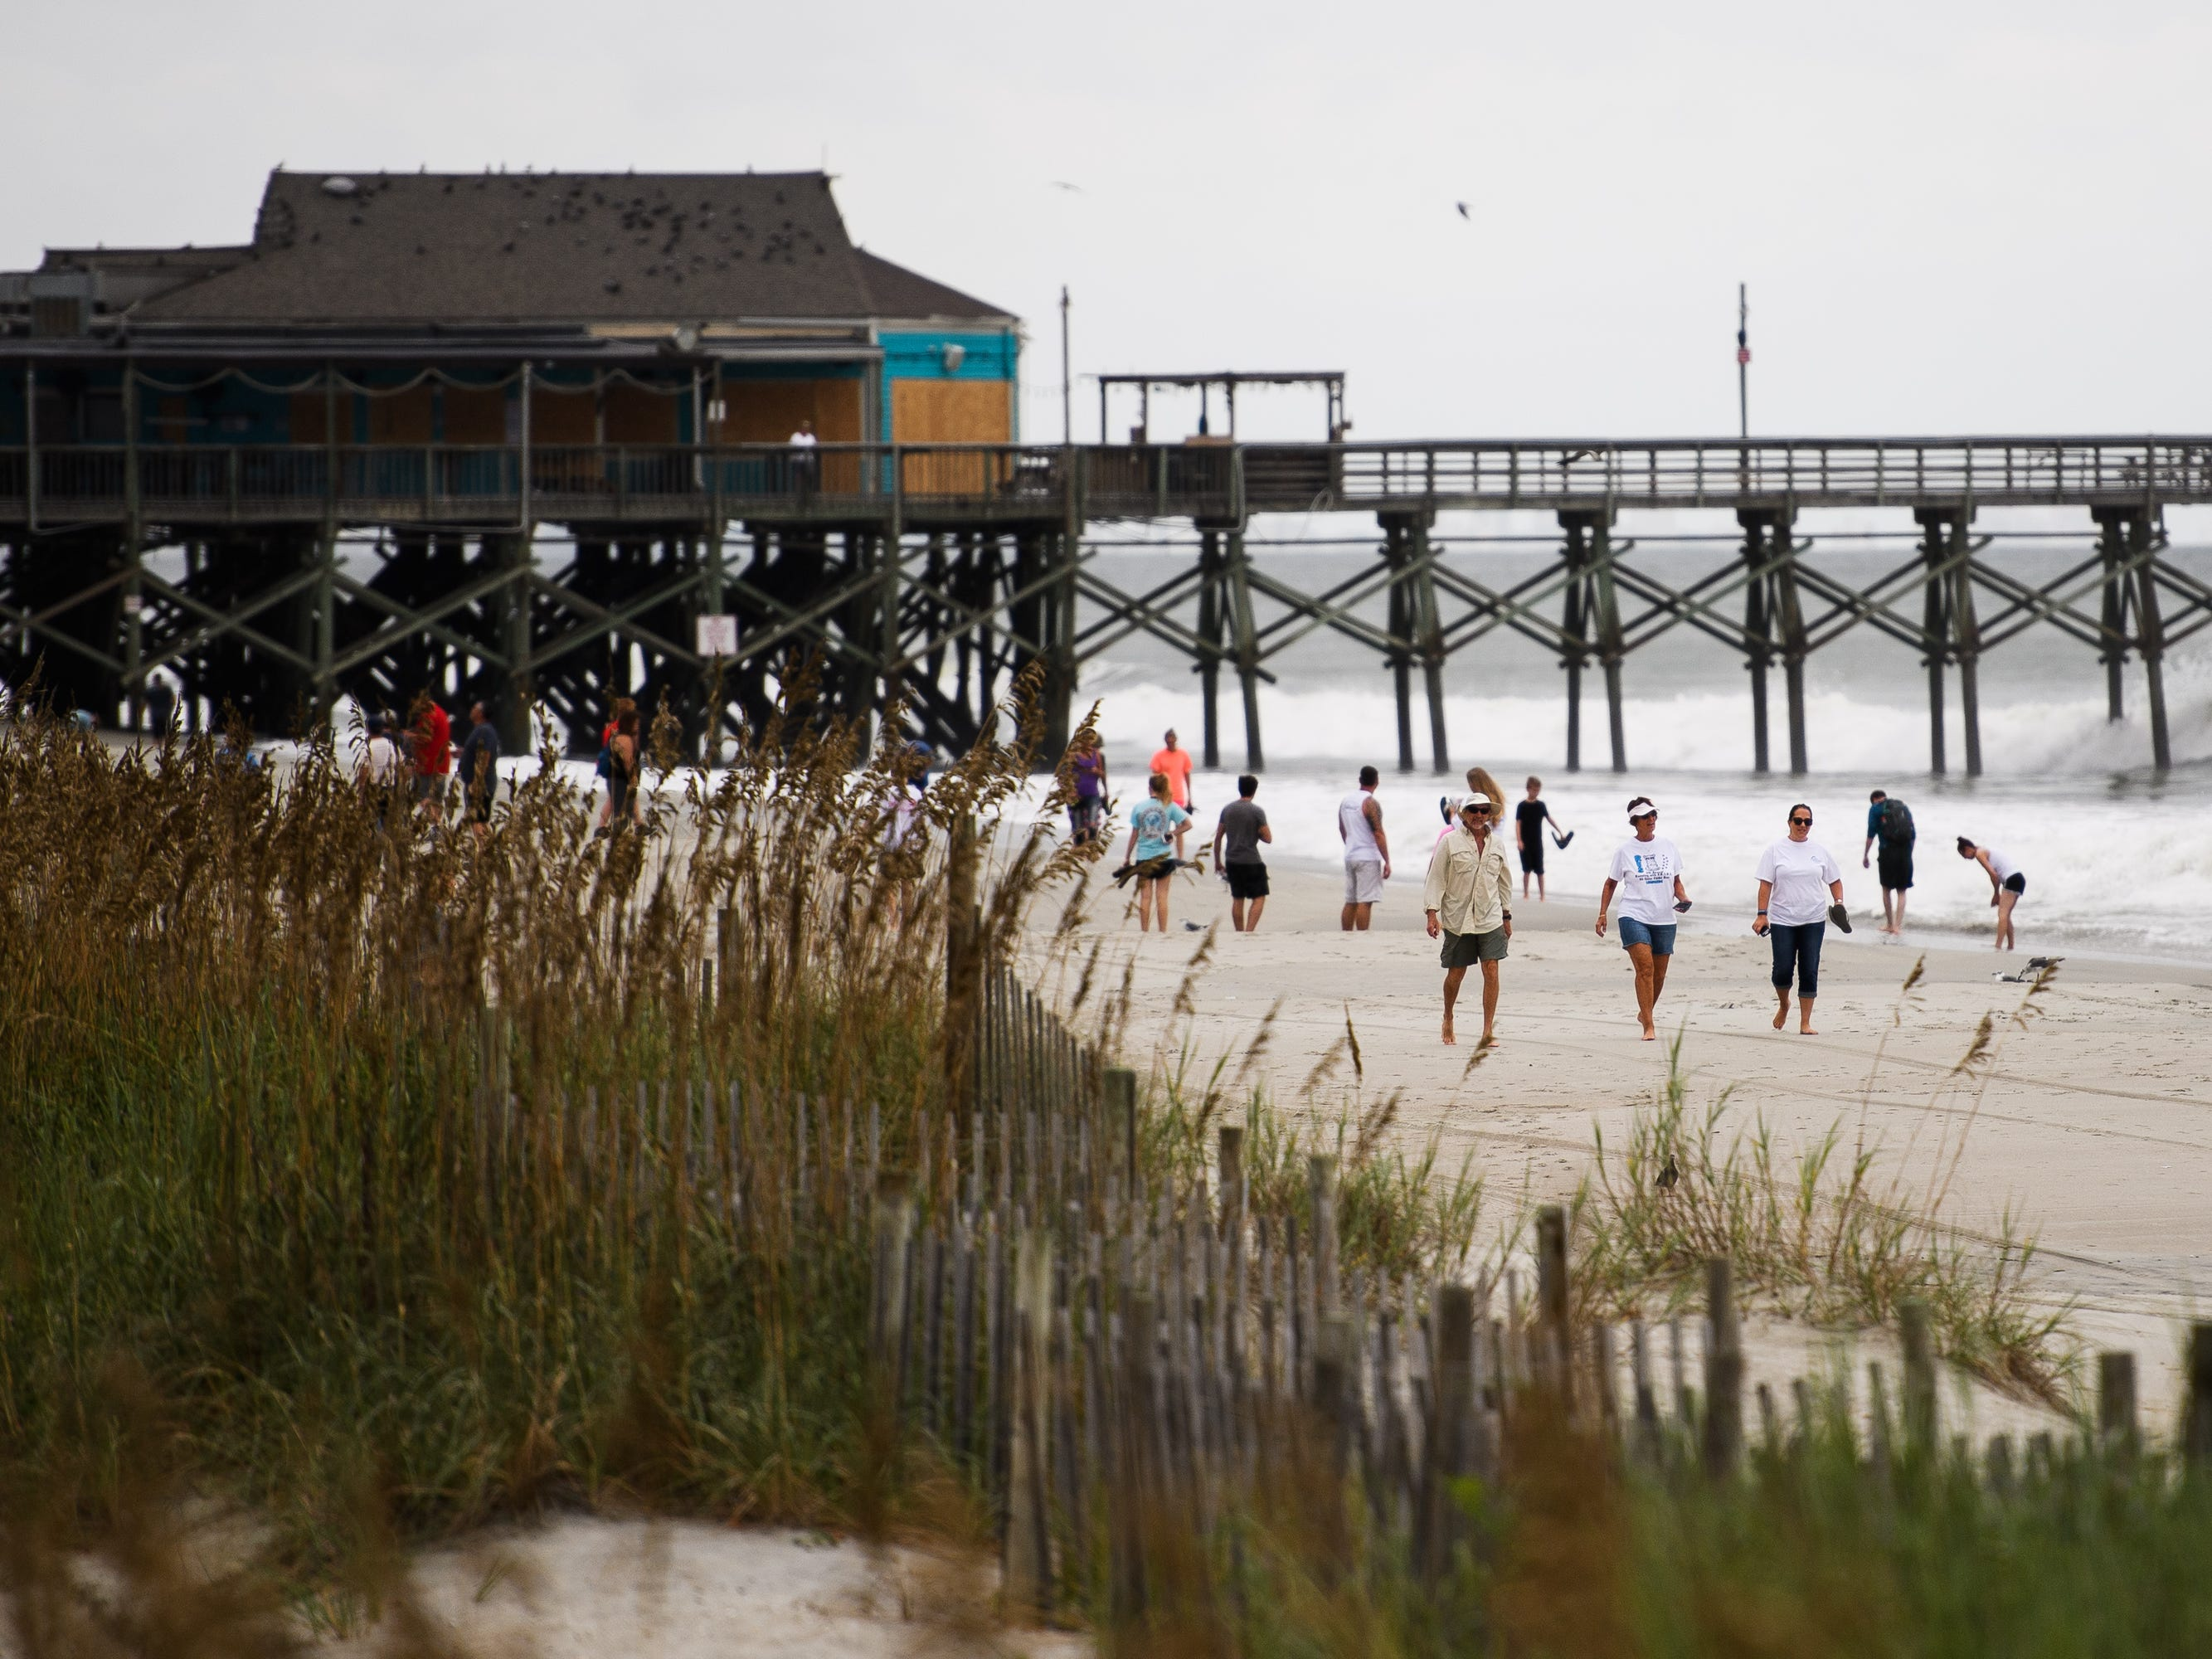 Myrtle Beach residents enjoy the last hours of calm at the Myrtle Beach Boardwalk and Promenade on Thursday, Sept. 13, 2018 before the arrival of Hurricane Florence.